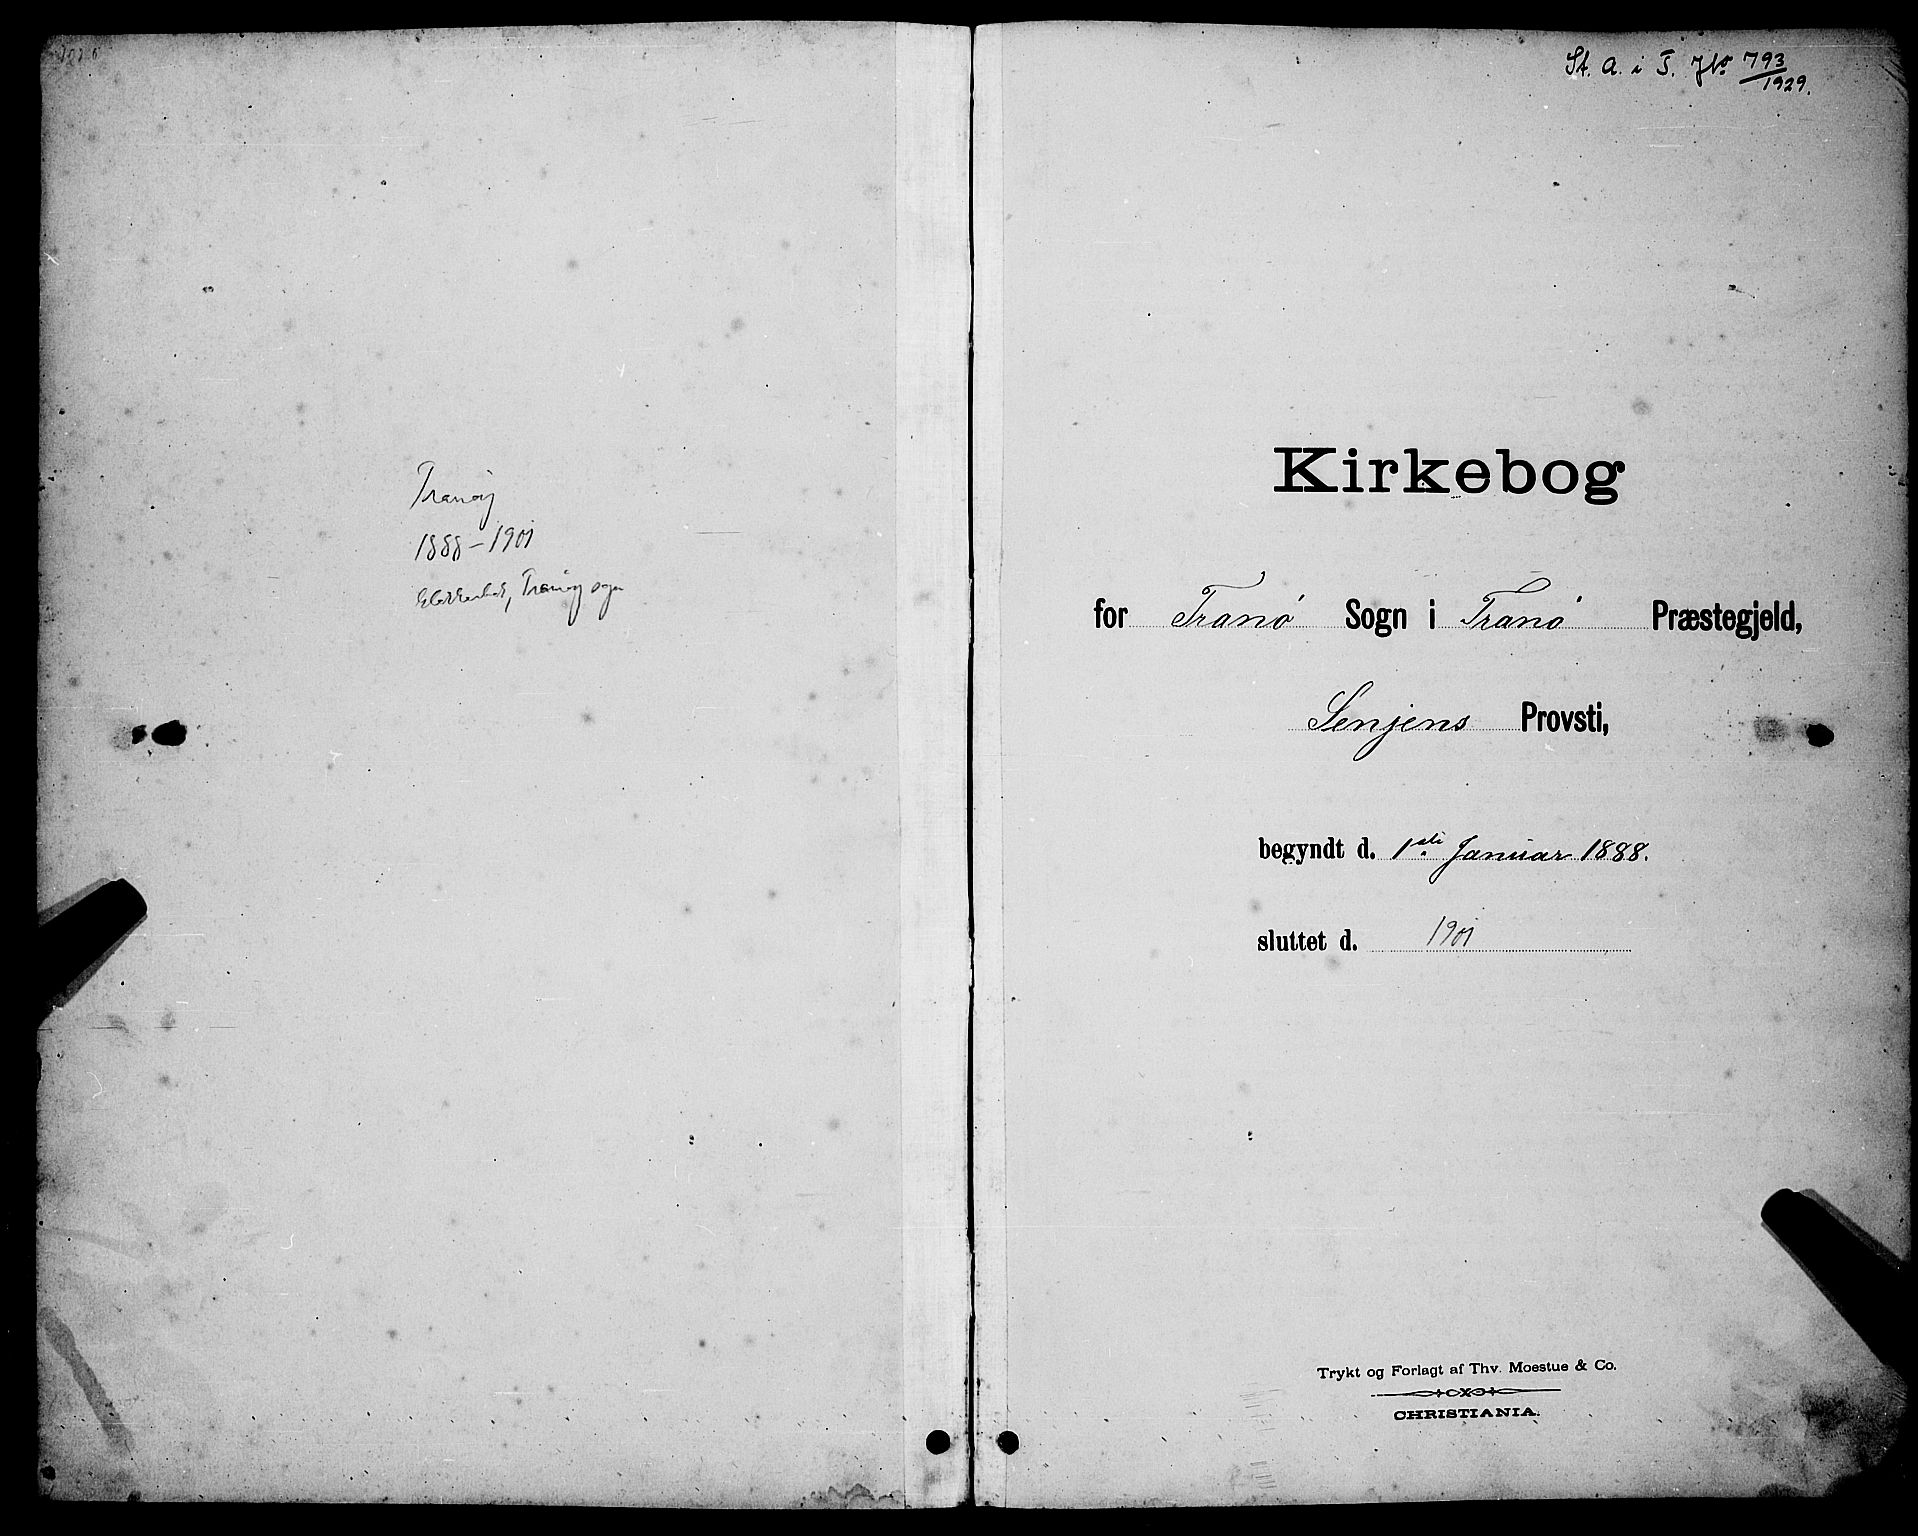 SATØ, Tranøy sokneprestkontor, I/Ia/Iab/L0004klokker: Parish register (copy) no. 4, 1888-1901